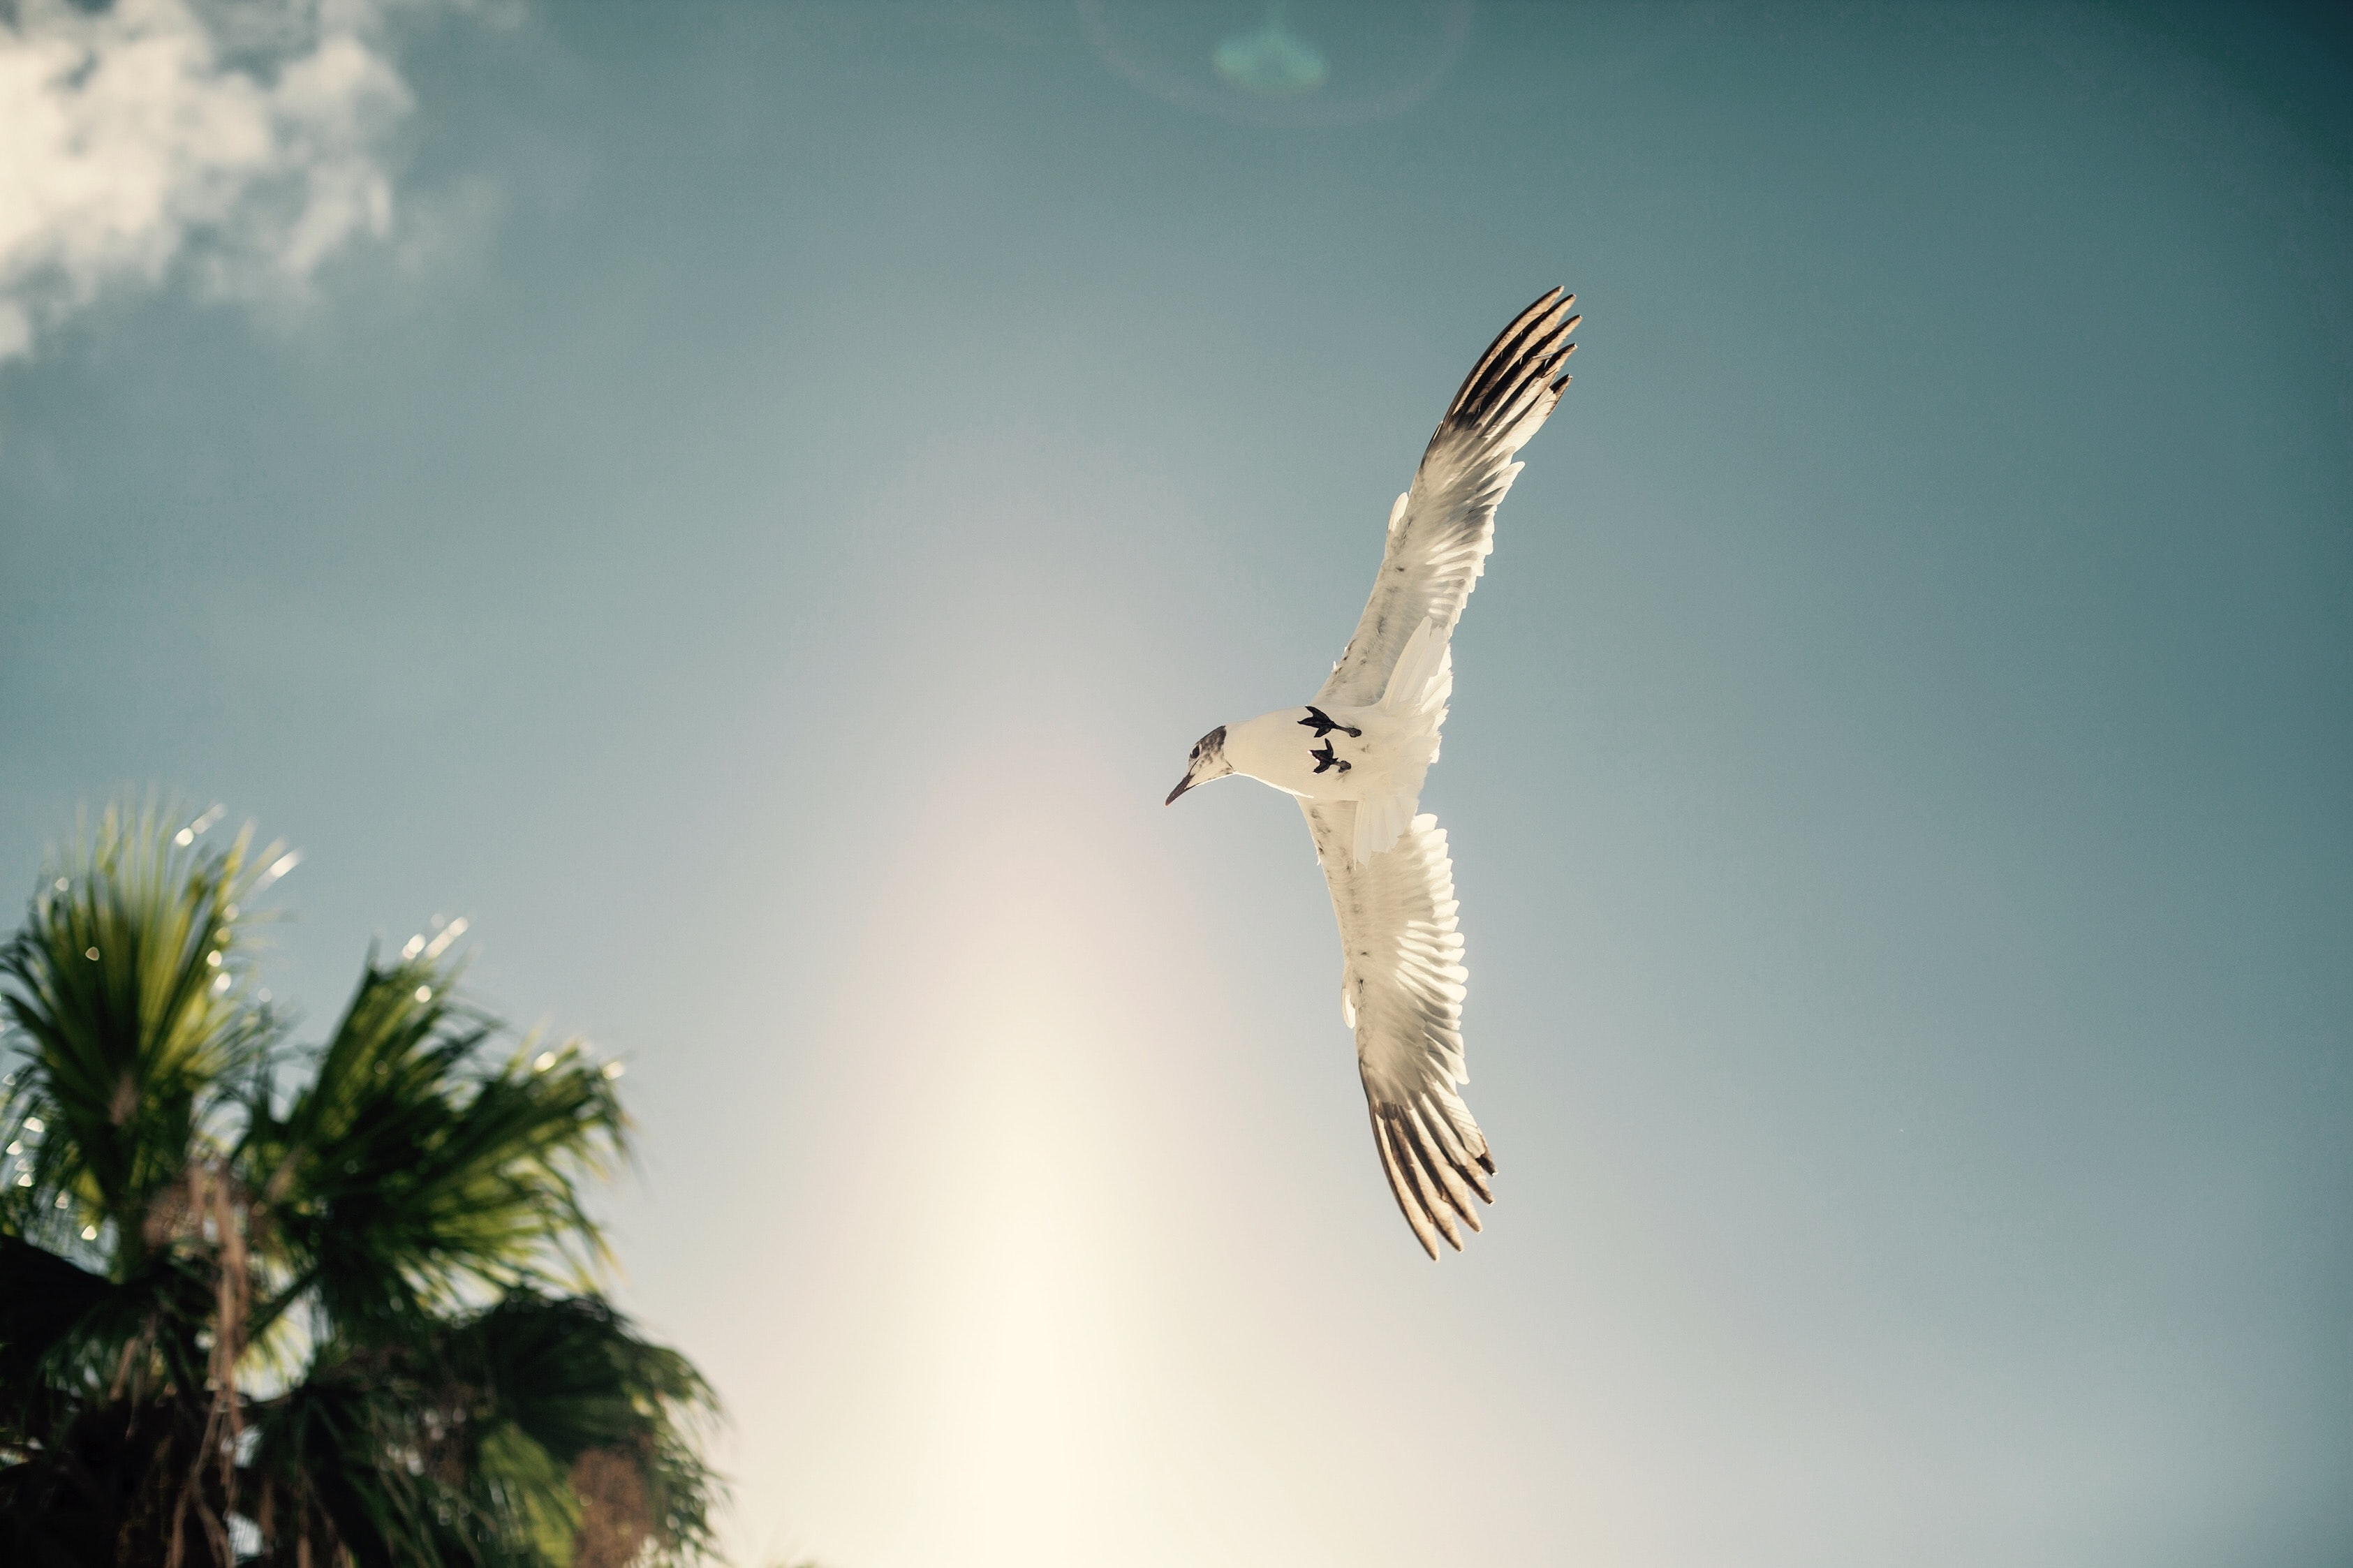 white bird soaring near tree during daytime